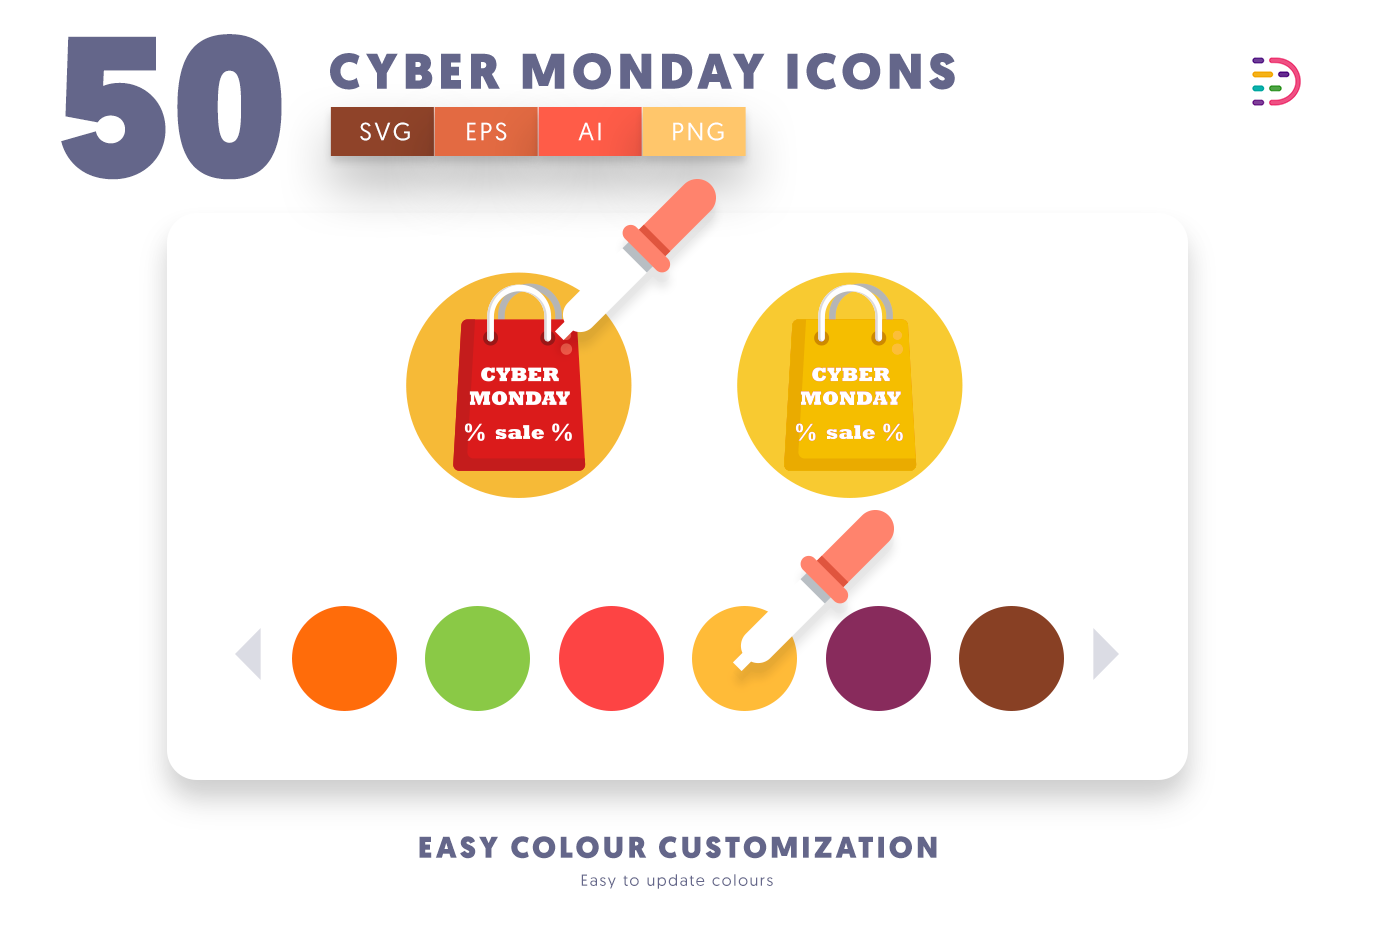 Customizable and vector 50 Cyber Monday Icons